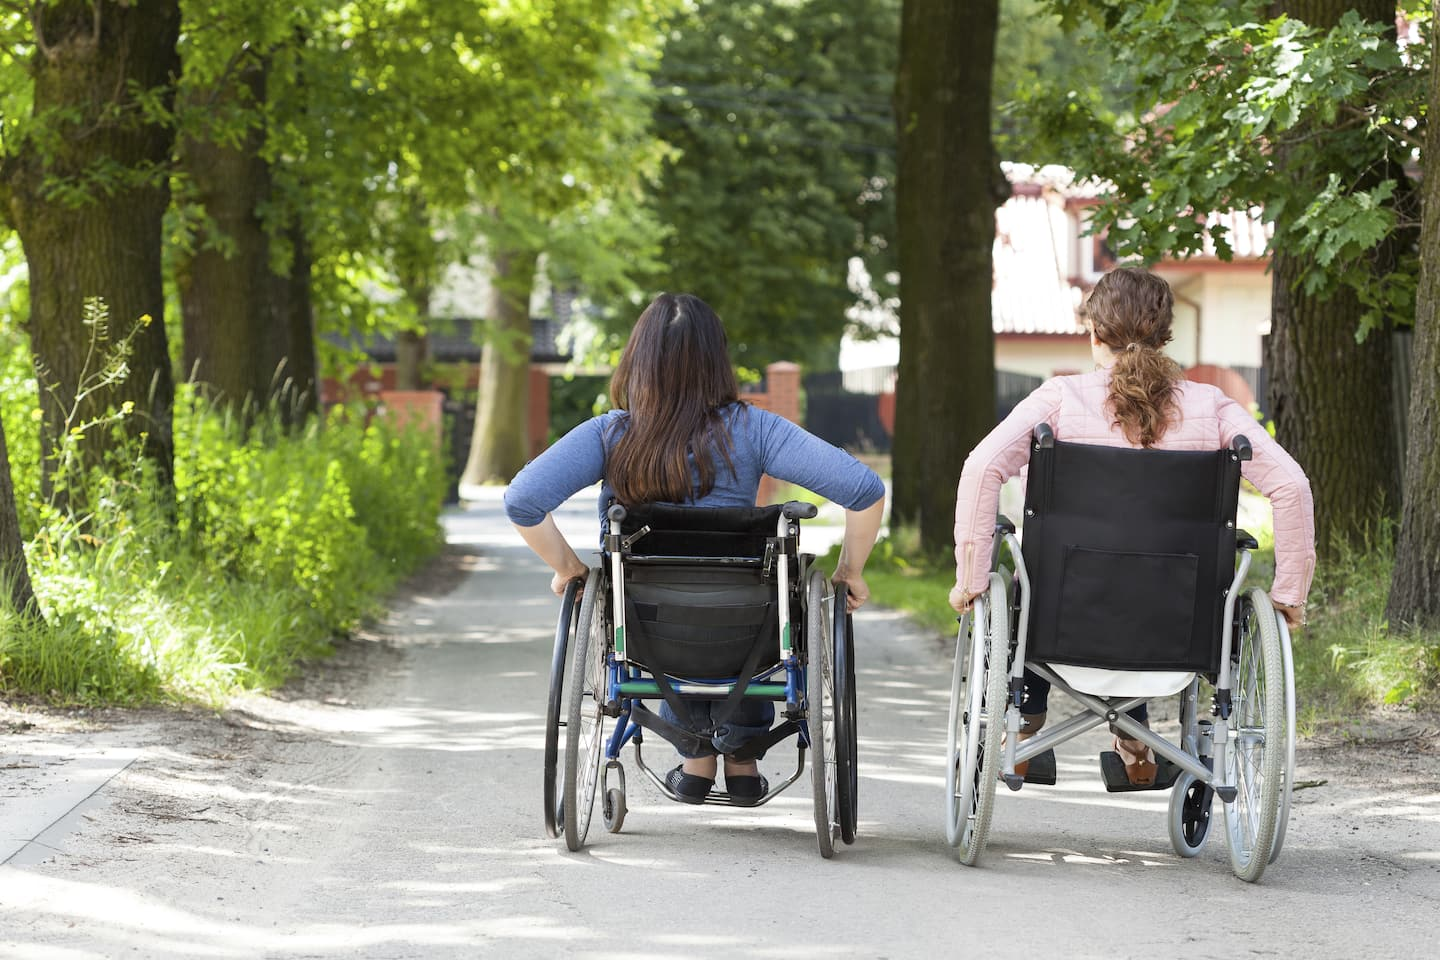 two young girls using wheelchairs on path